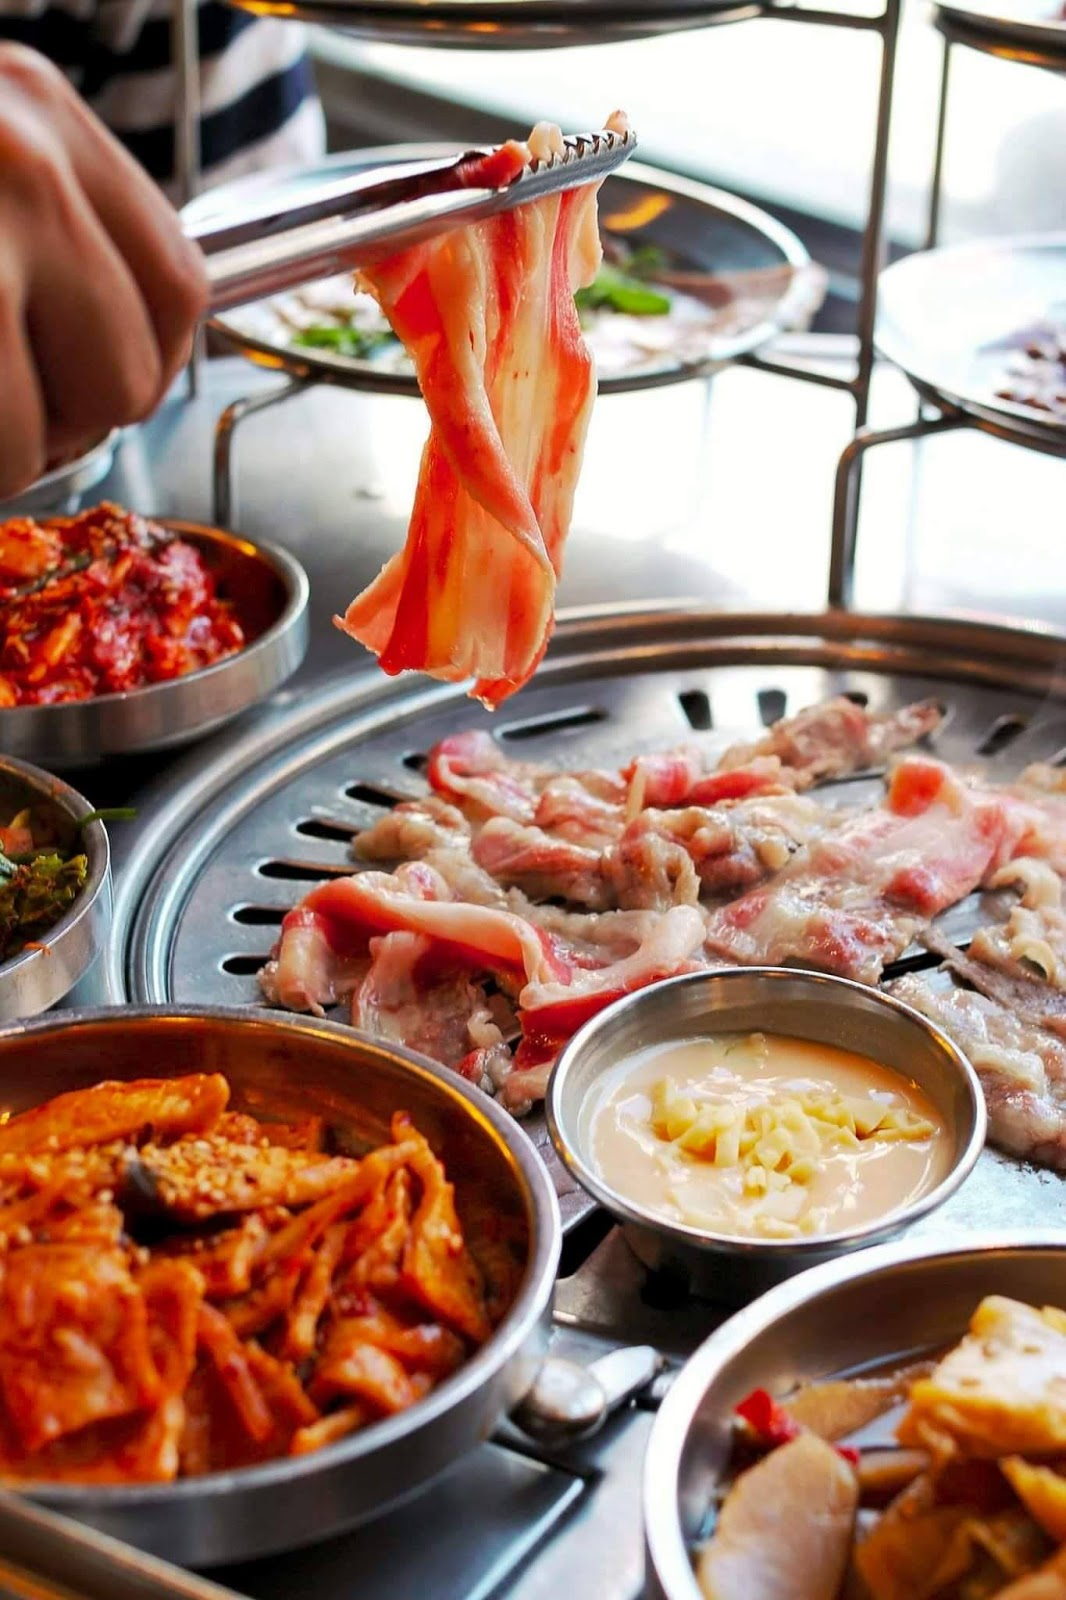 Korean Barbecue Places Near Me